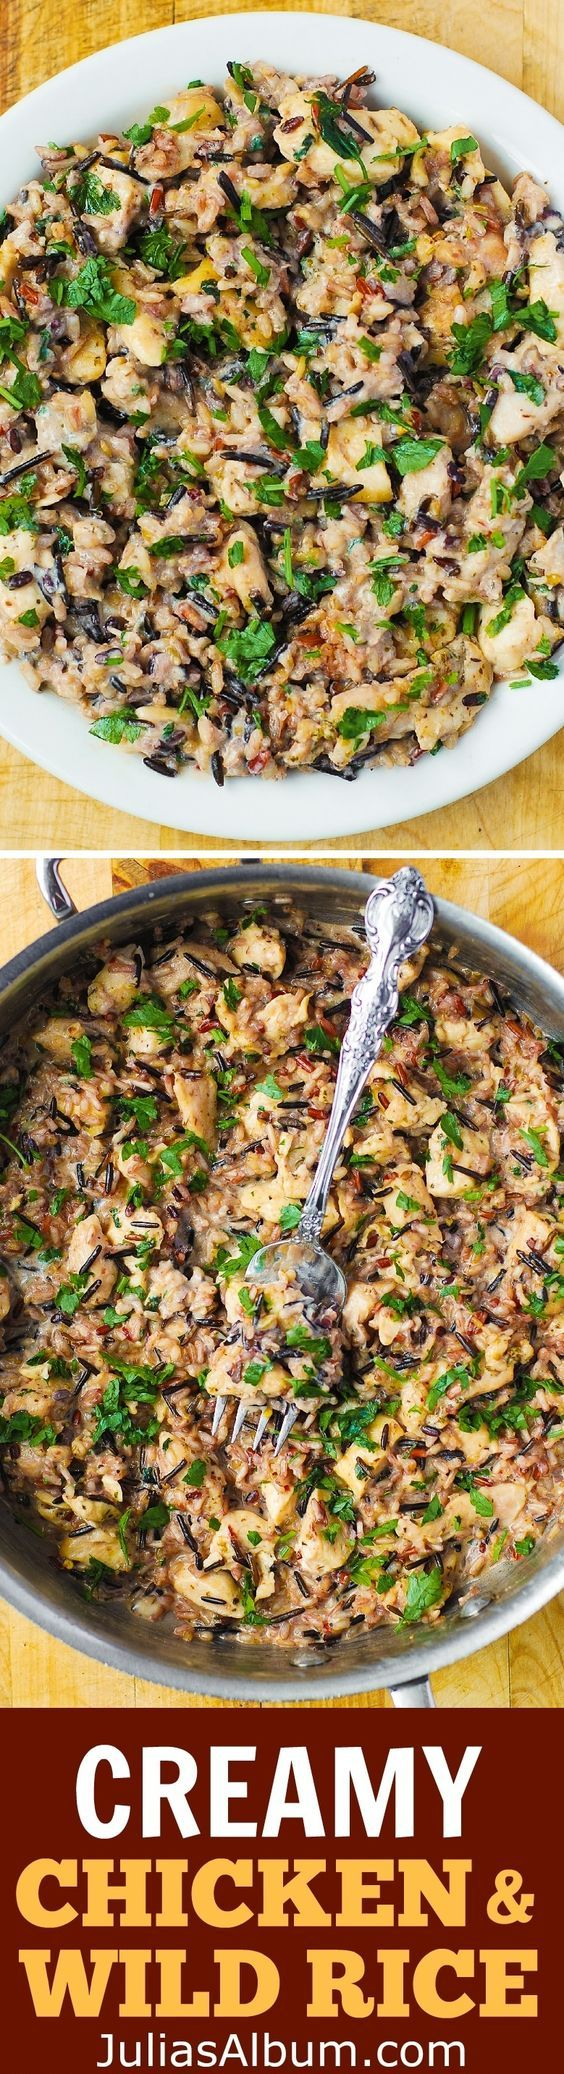 Creamy Parmesan Chicken & Wild Rice Recipe - like casserole but made on a stove-top.